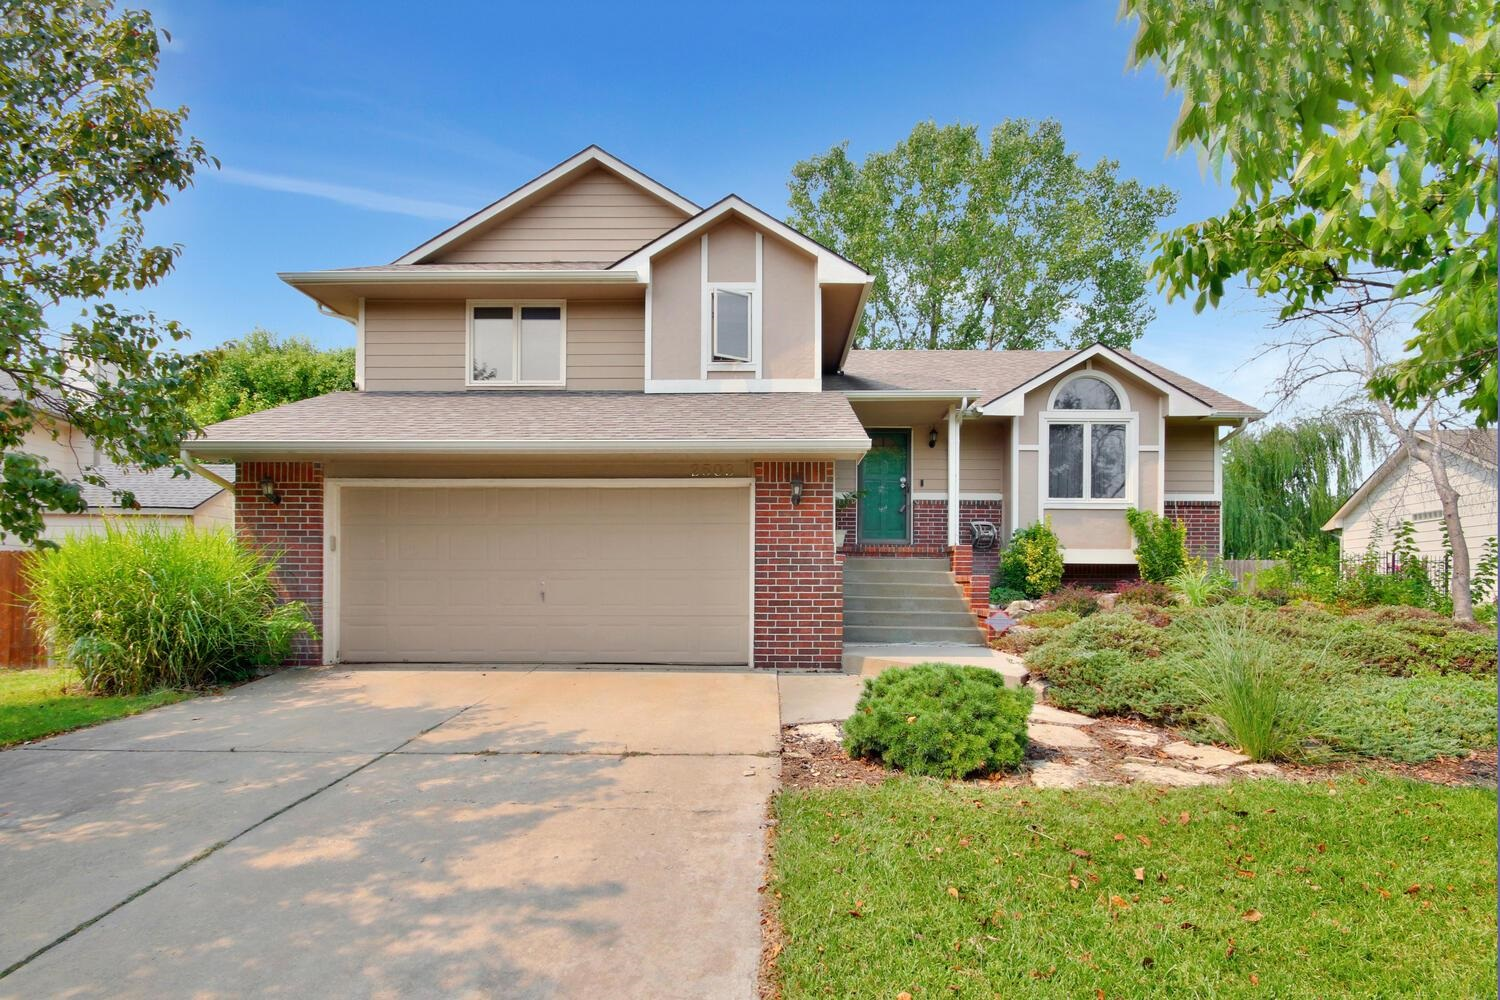 Wonderful Family home located in an established Neighborhood with mature trees and less than a block